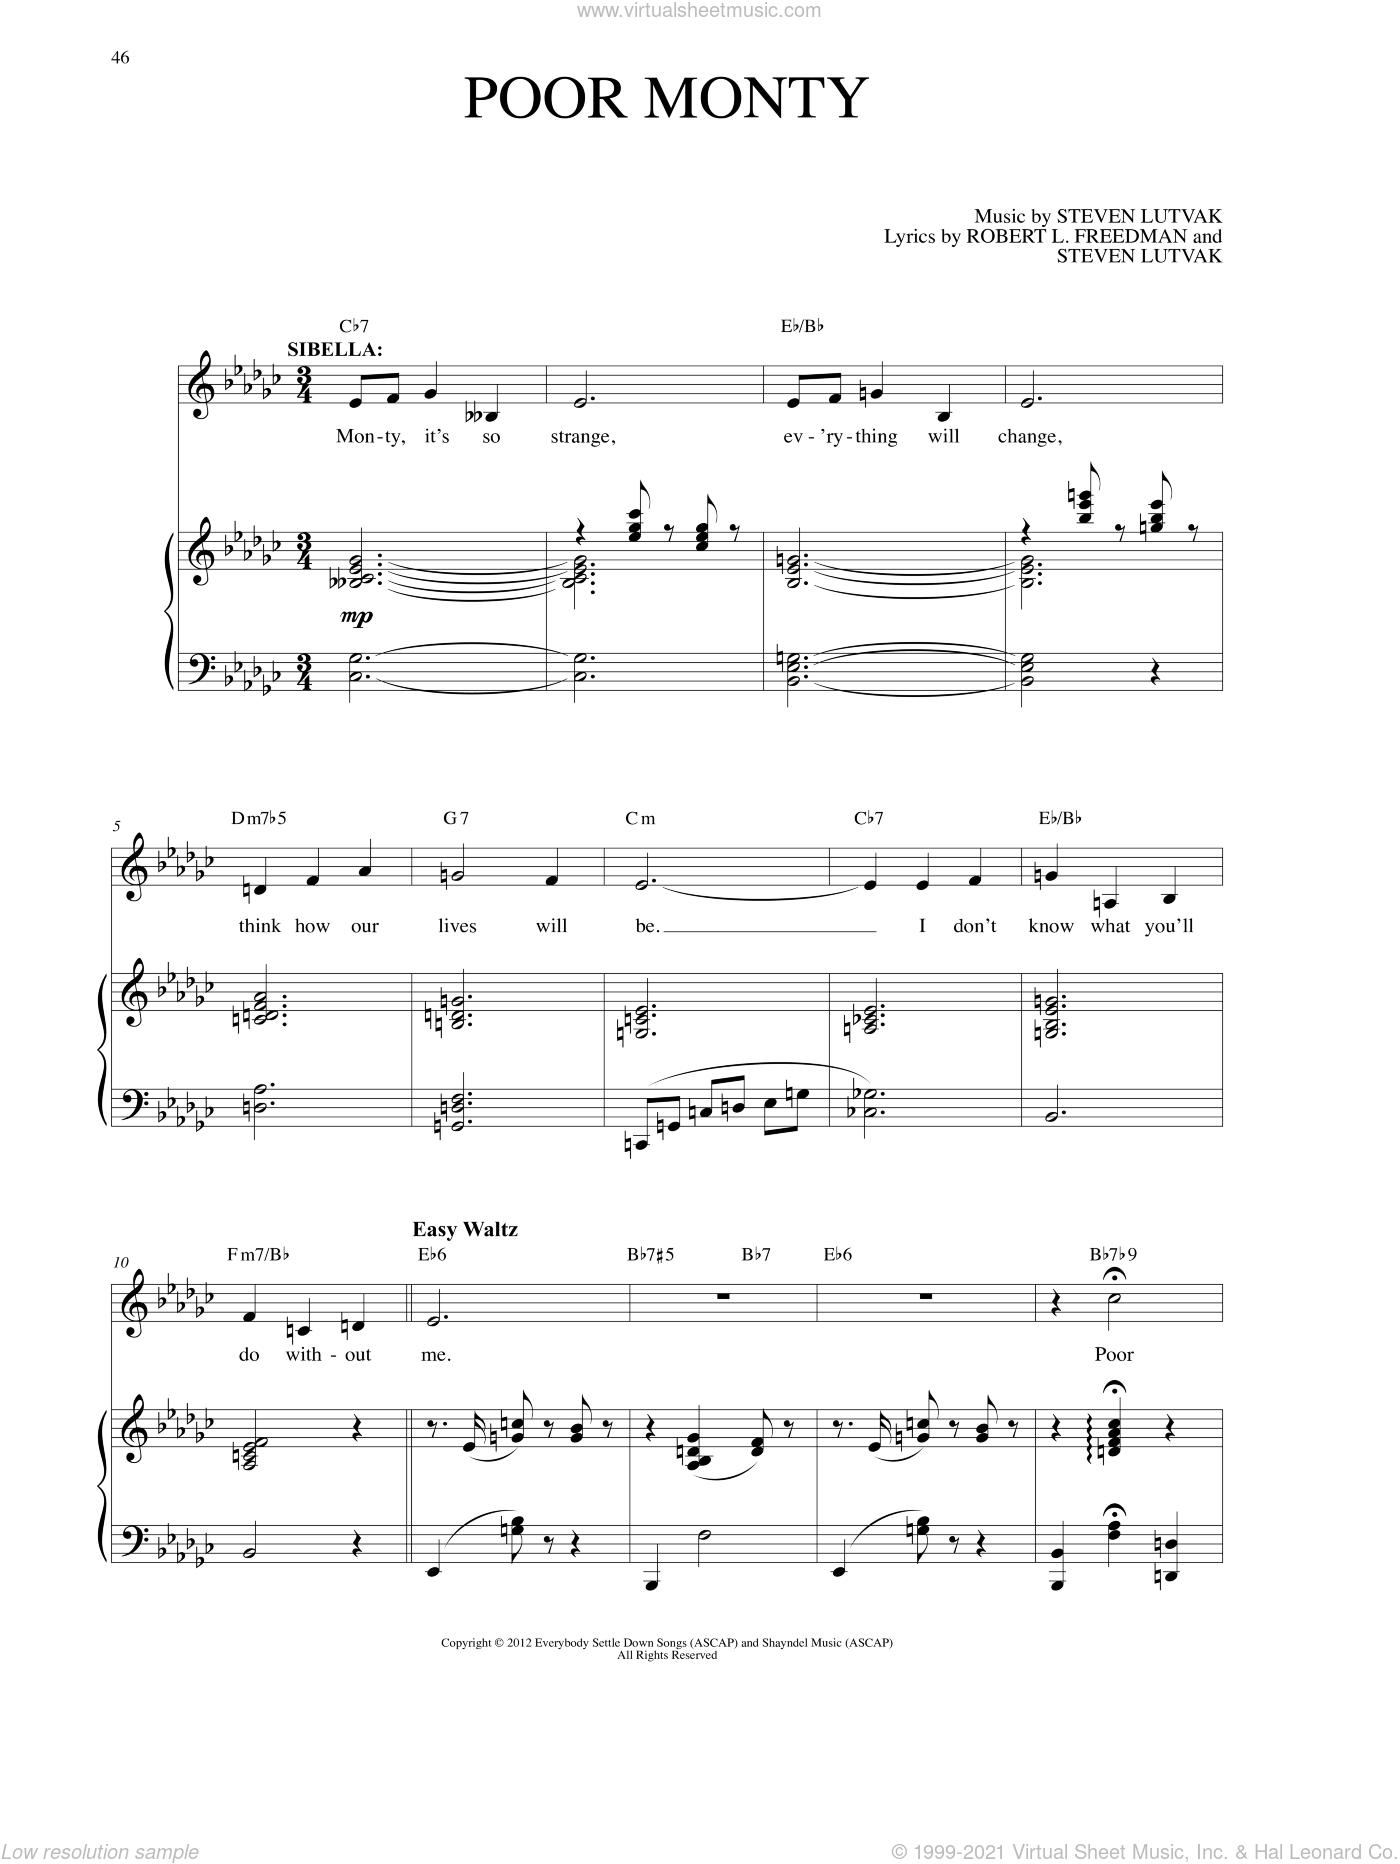 Poor Monty sheet music for voice and piano by Robert L. Freedman. Score Image Preview.